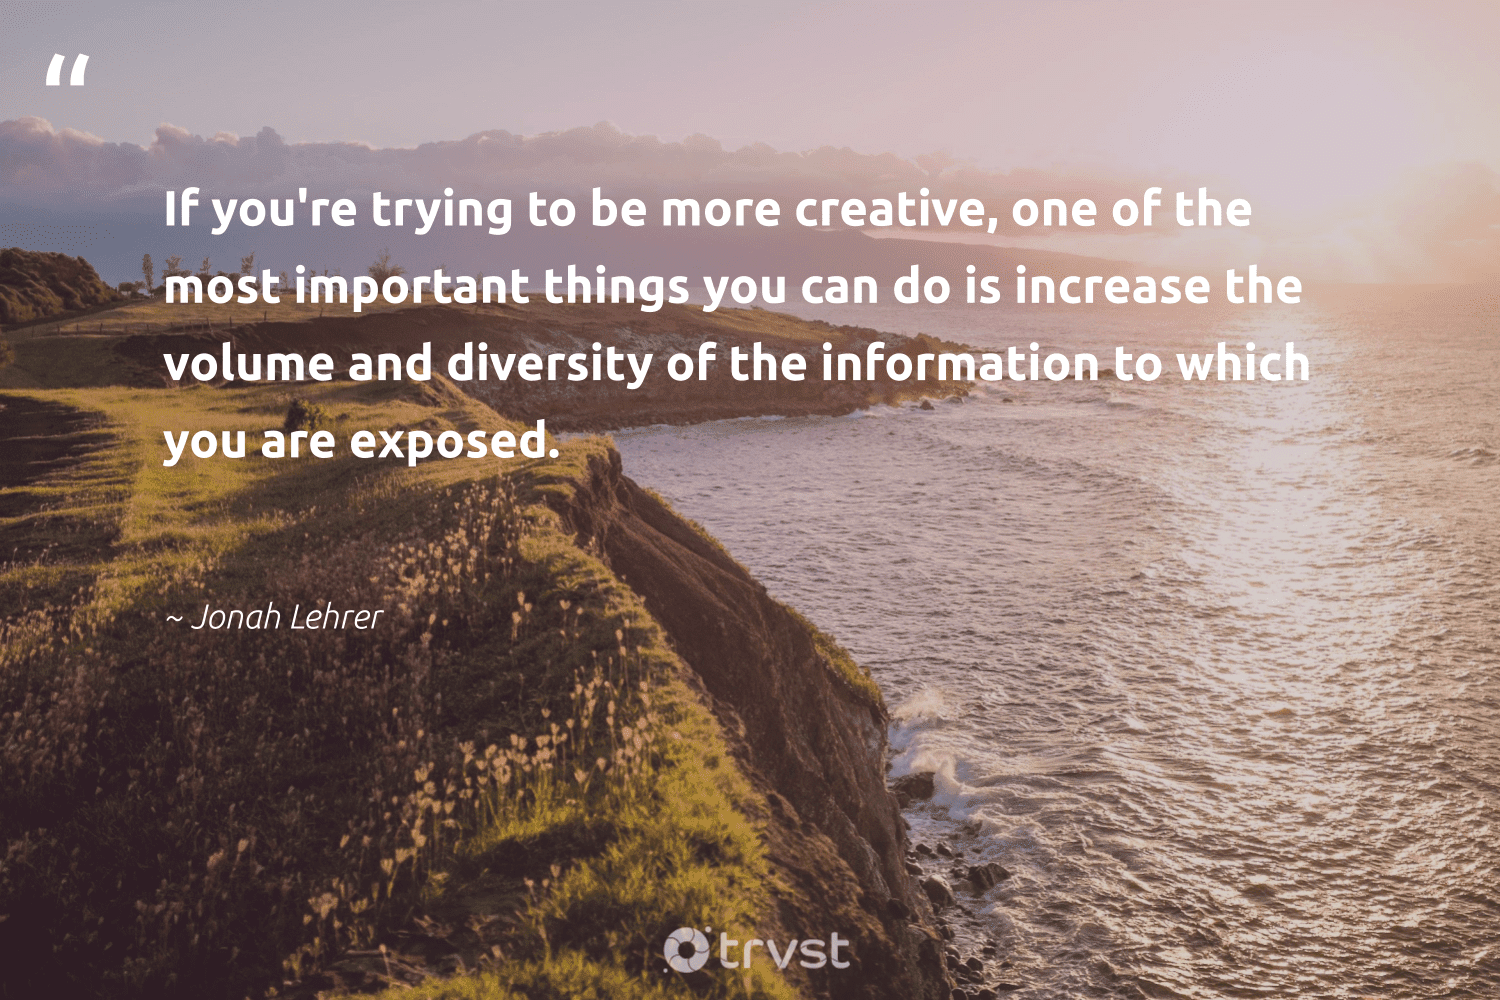 """""""If you're trying to be more creative, one of the most important things you can do is increase the volume and diversity of the information to which you are exposed.""""  - Jonah Lehrer #trvst #quotes #diversity #creative #representationmatters #discrimination #nevergiveup #weareallone #dosomething #inclusion #futureofwork #makeadifference"""